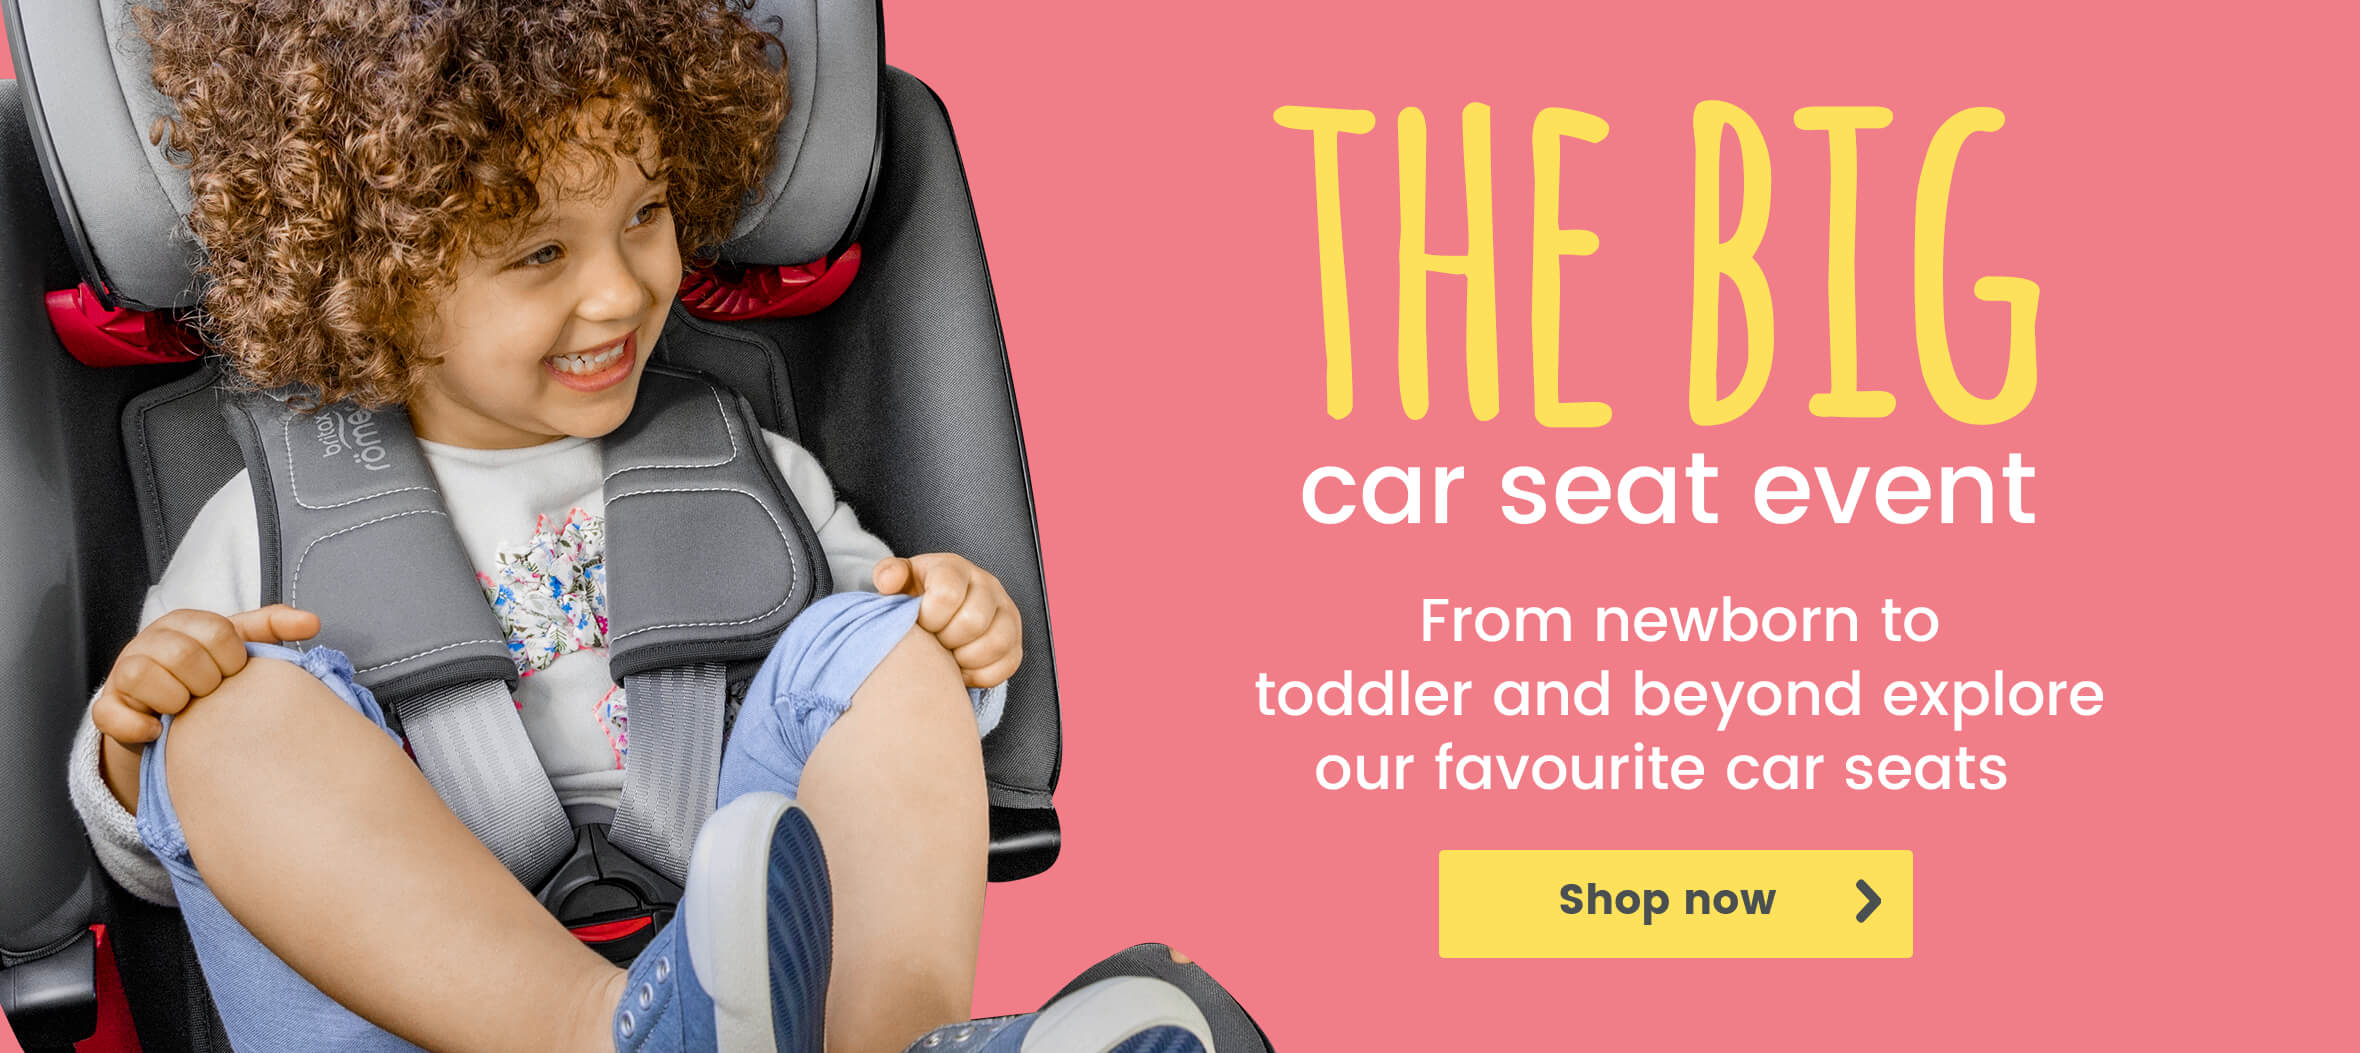 The Big Car Seat Event